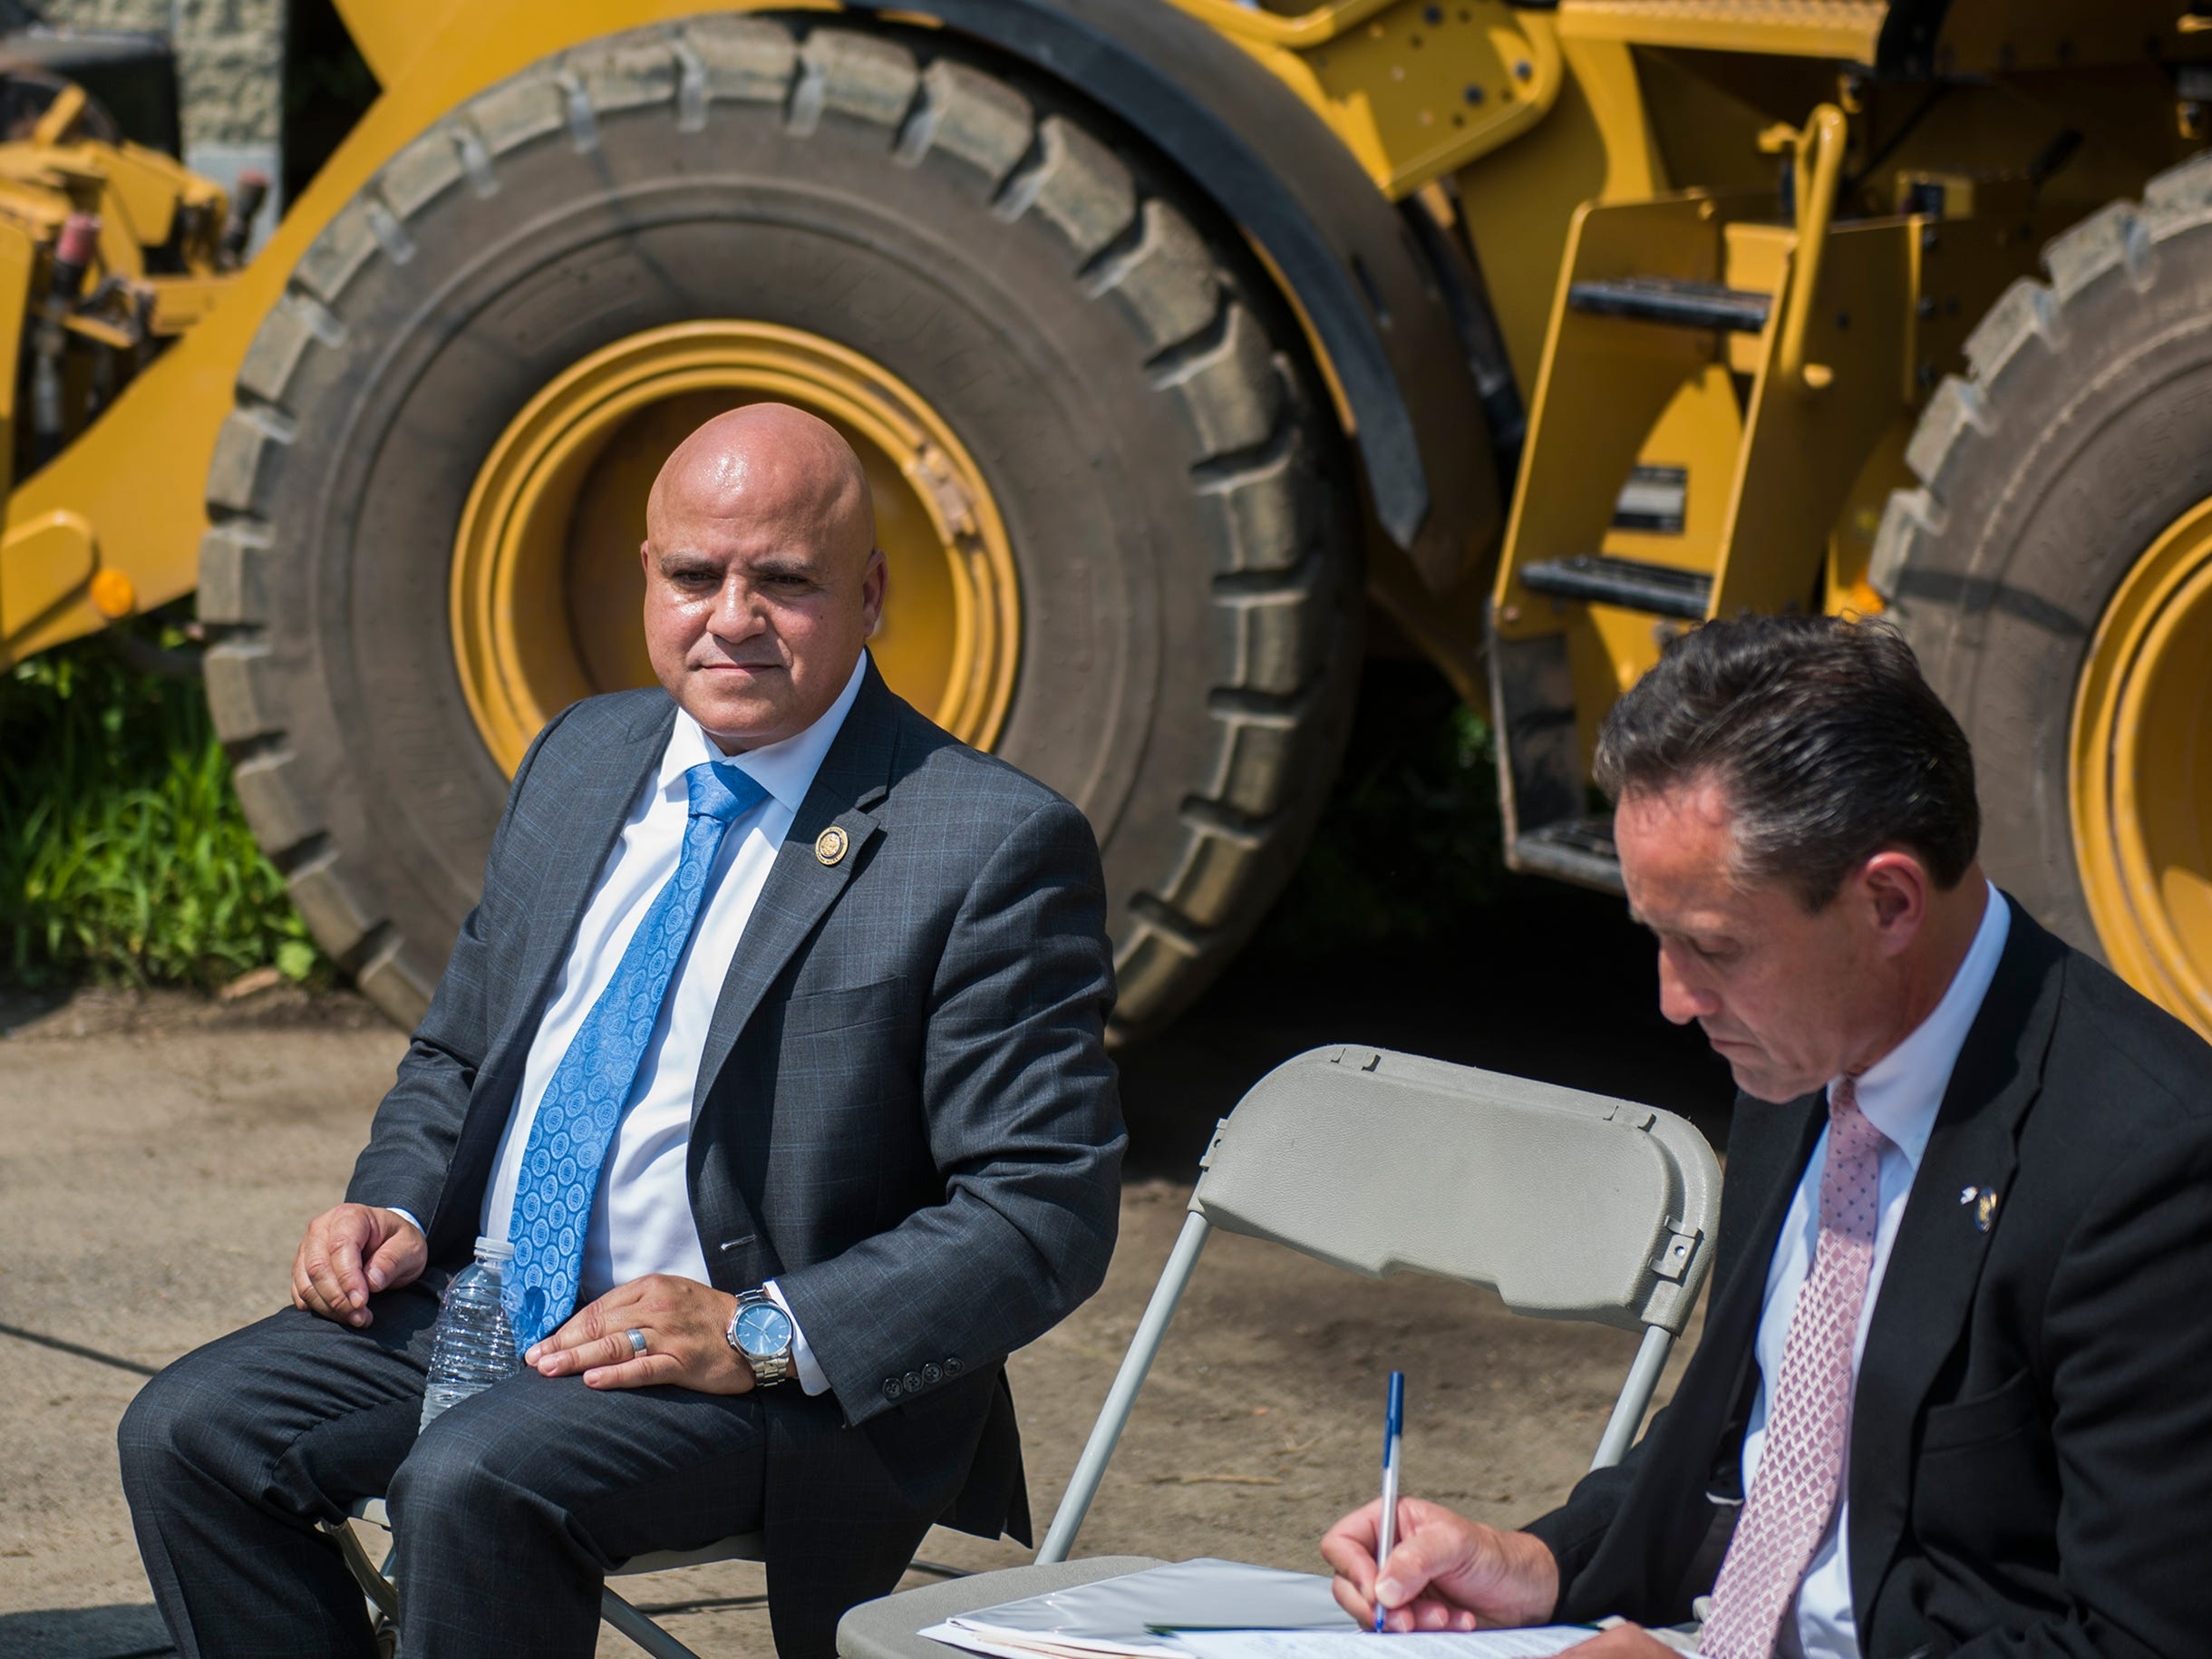 Mayor Frank Moran in attendance as a press conference is held at the Camden Labs site Wednesday, Aug. 15, 2018 in Camden, N.J. The former toxic and illegal dumping site will be cleaned and cleared to make way for recreational open space.